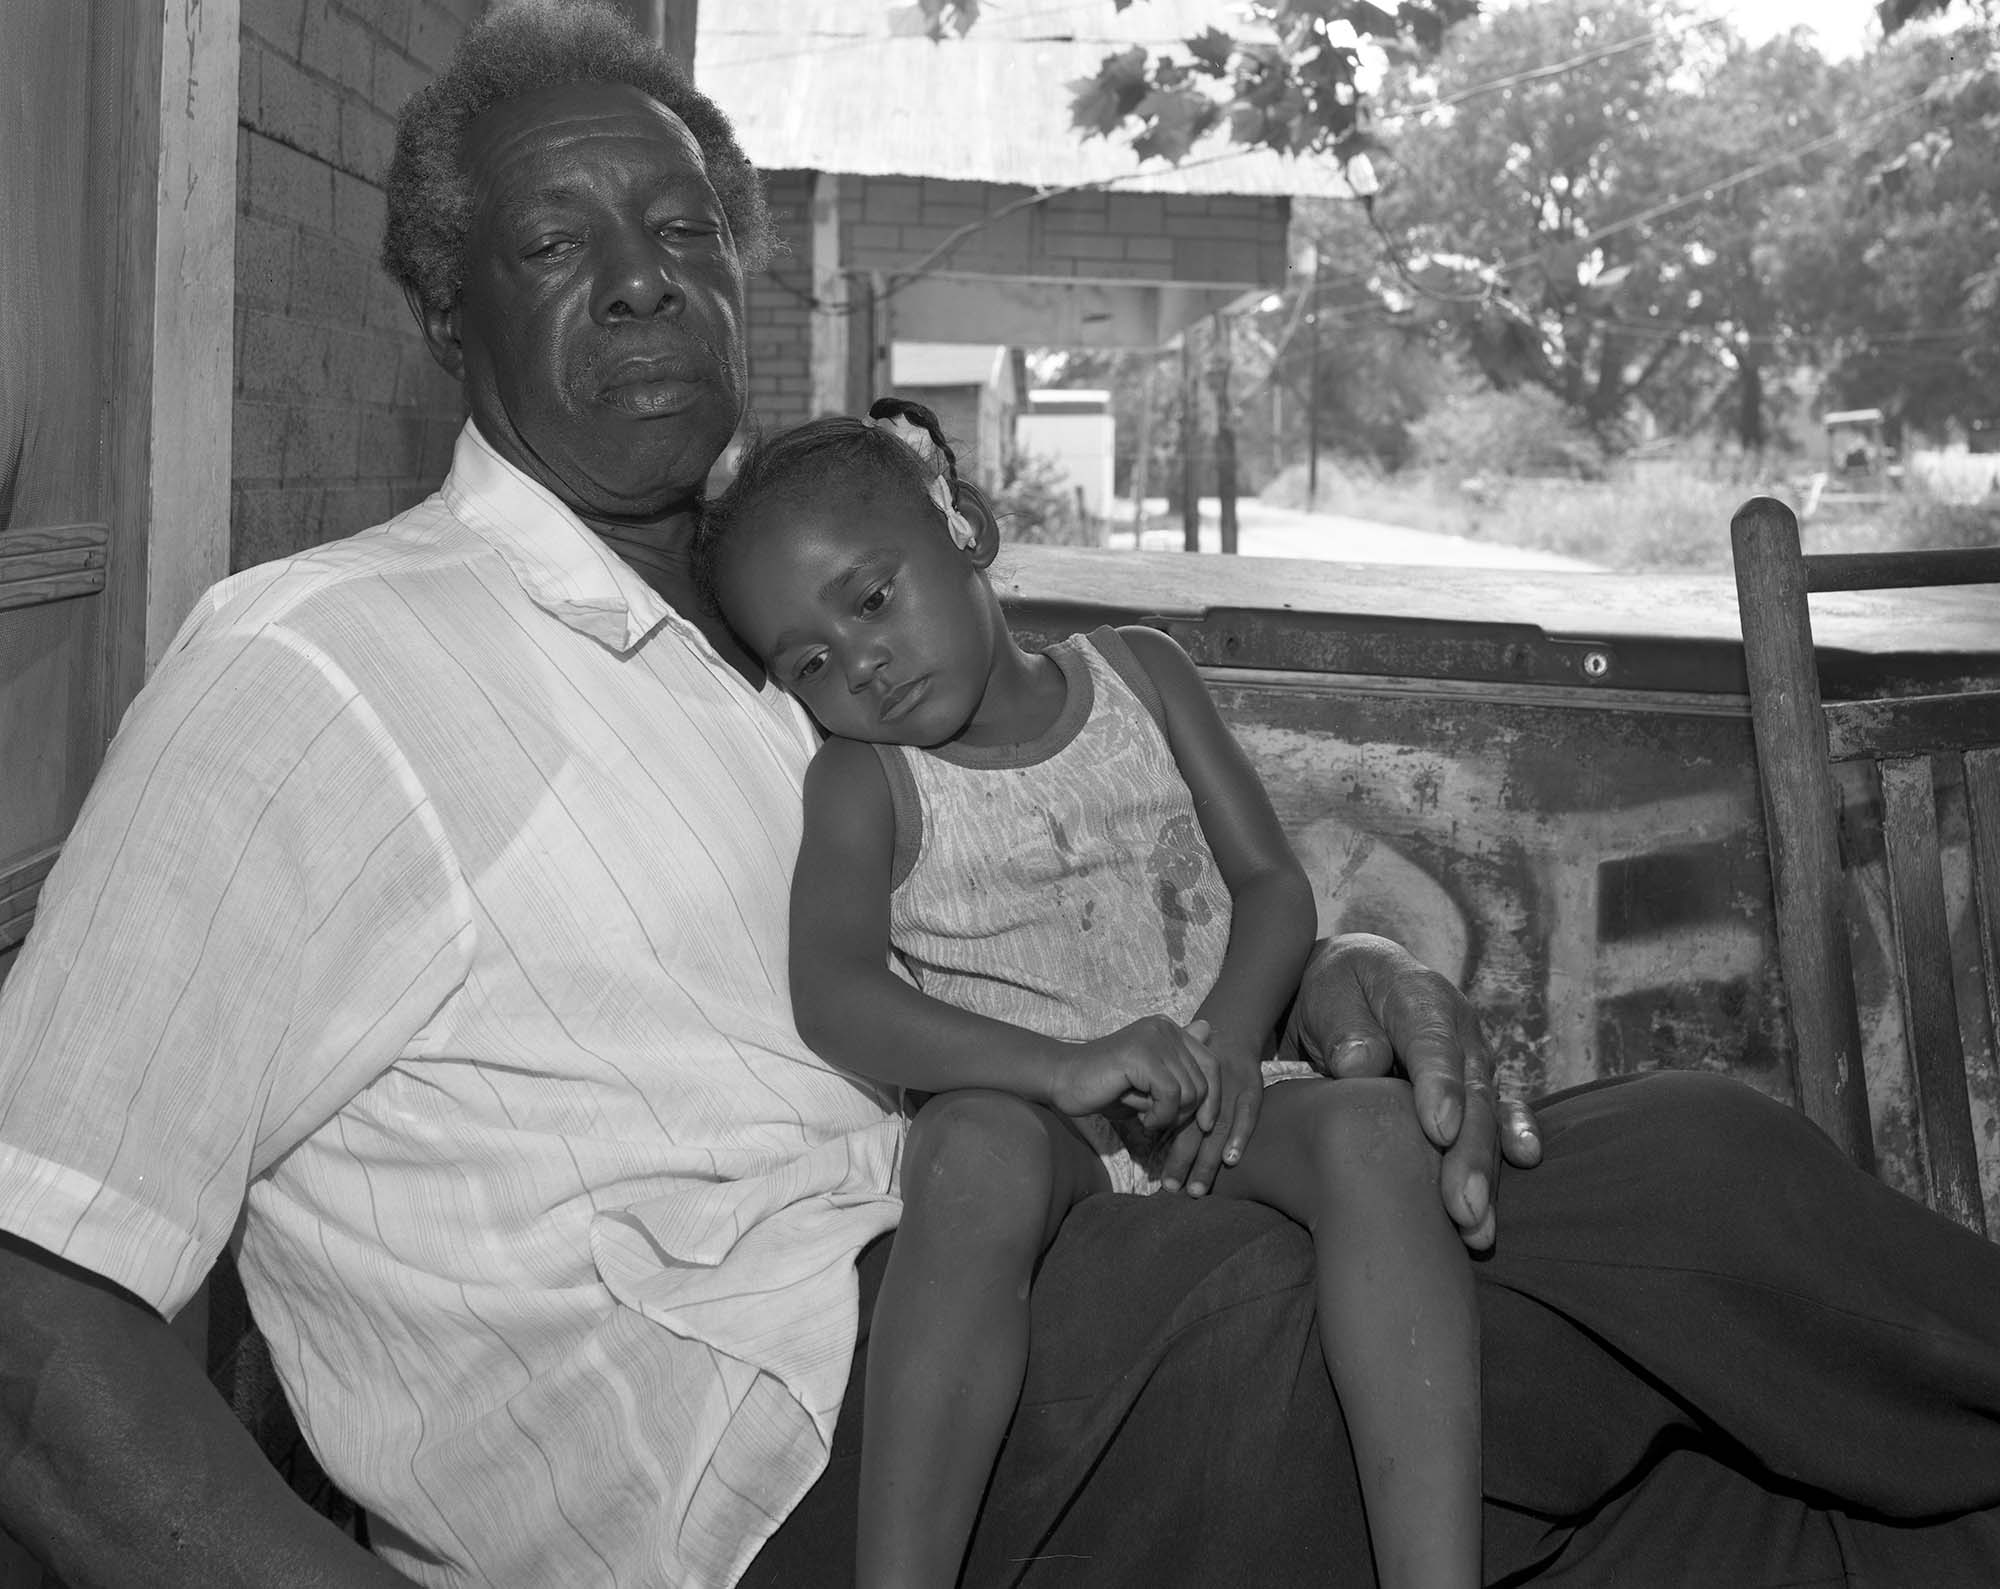 Mr.Lawrence and girl, Boyle, Ms.,1984.